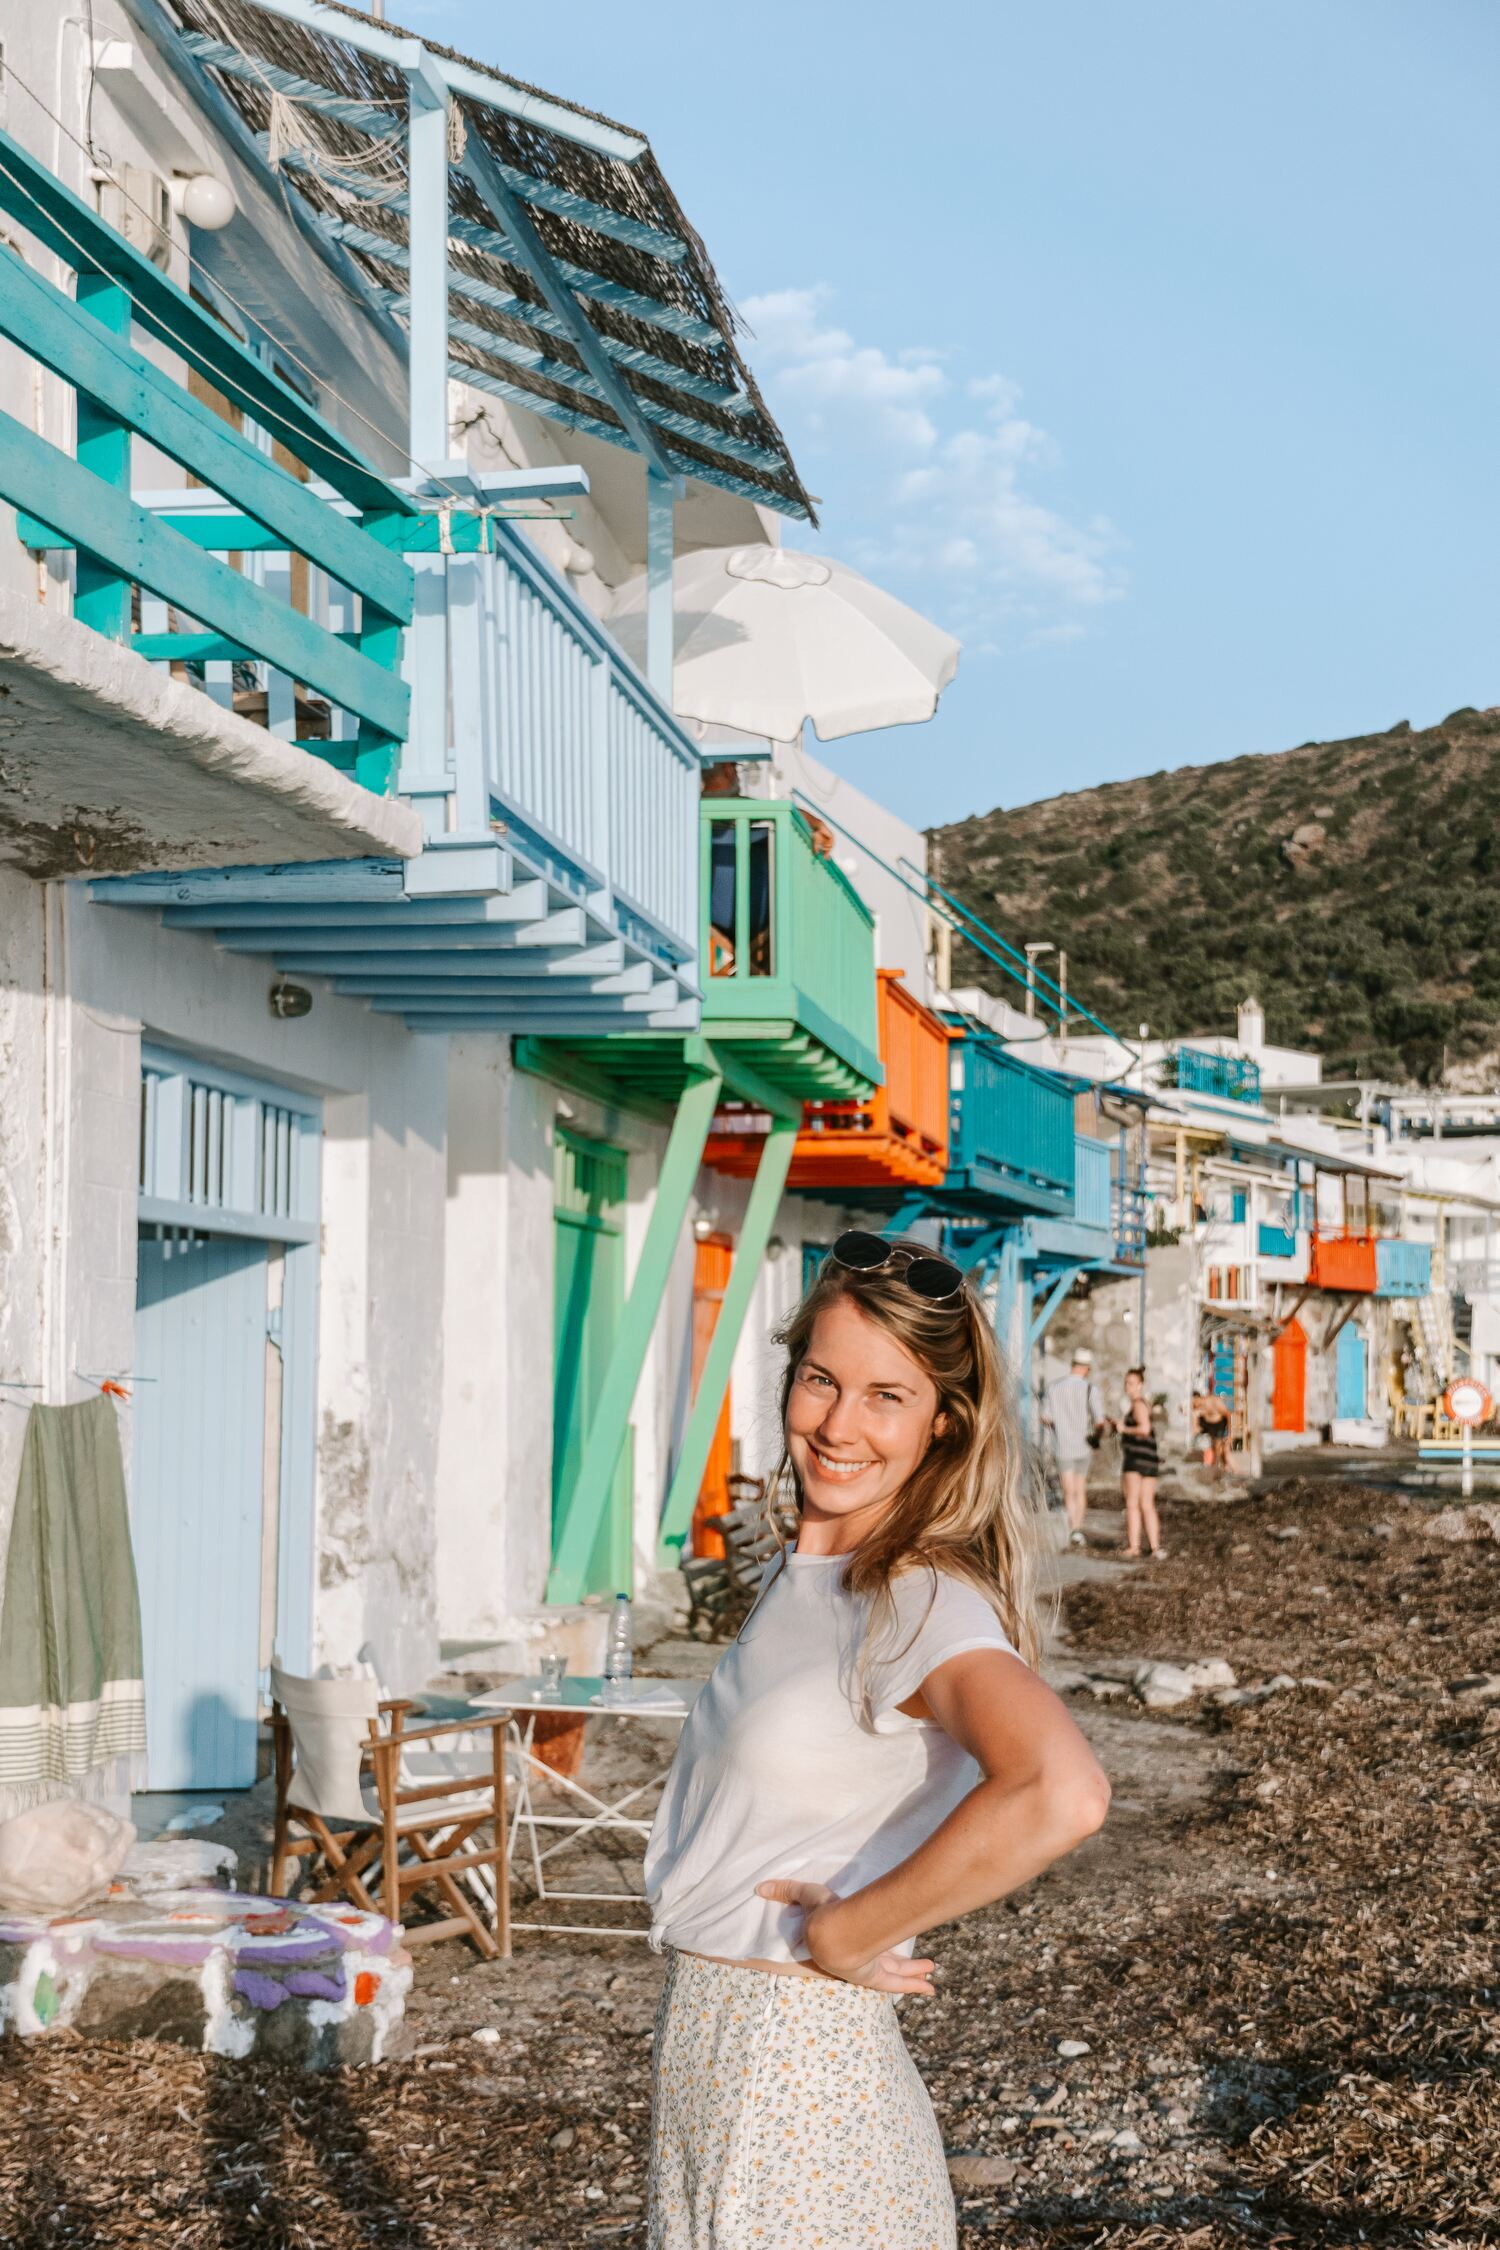 A sunset view over the beautiful fishing huts of Klima on the Greek island of Milos